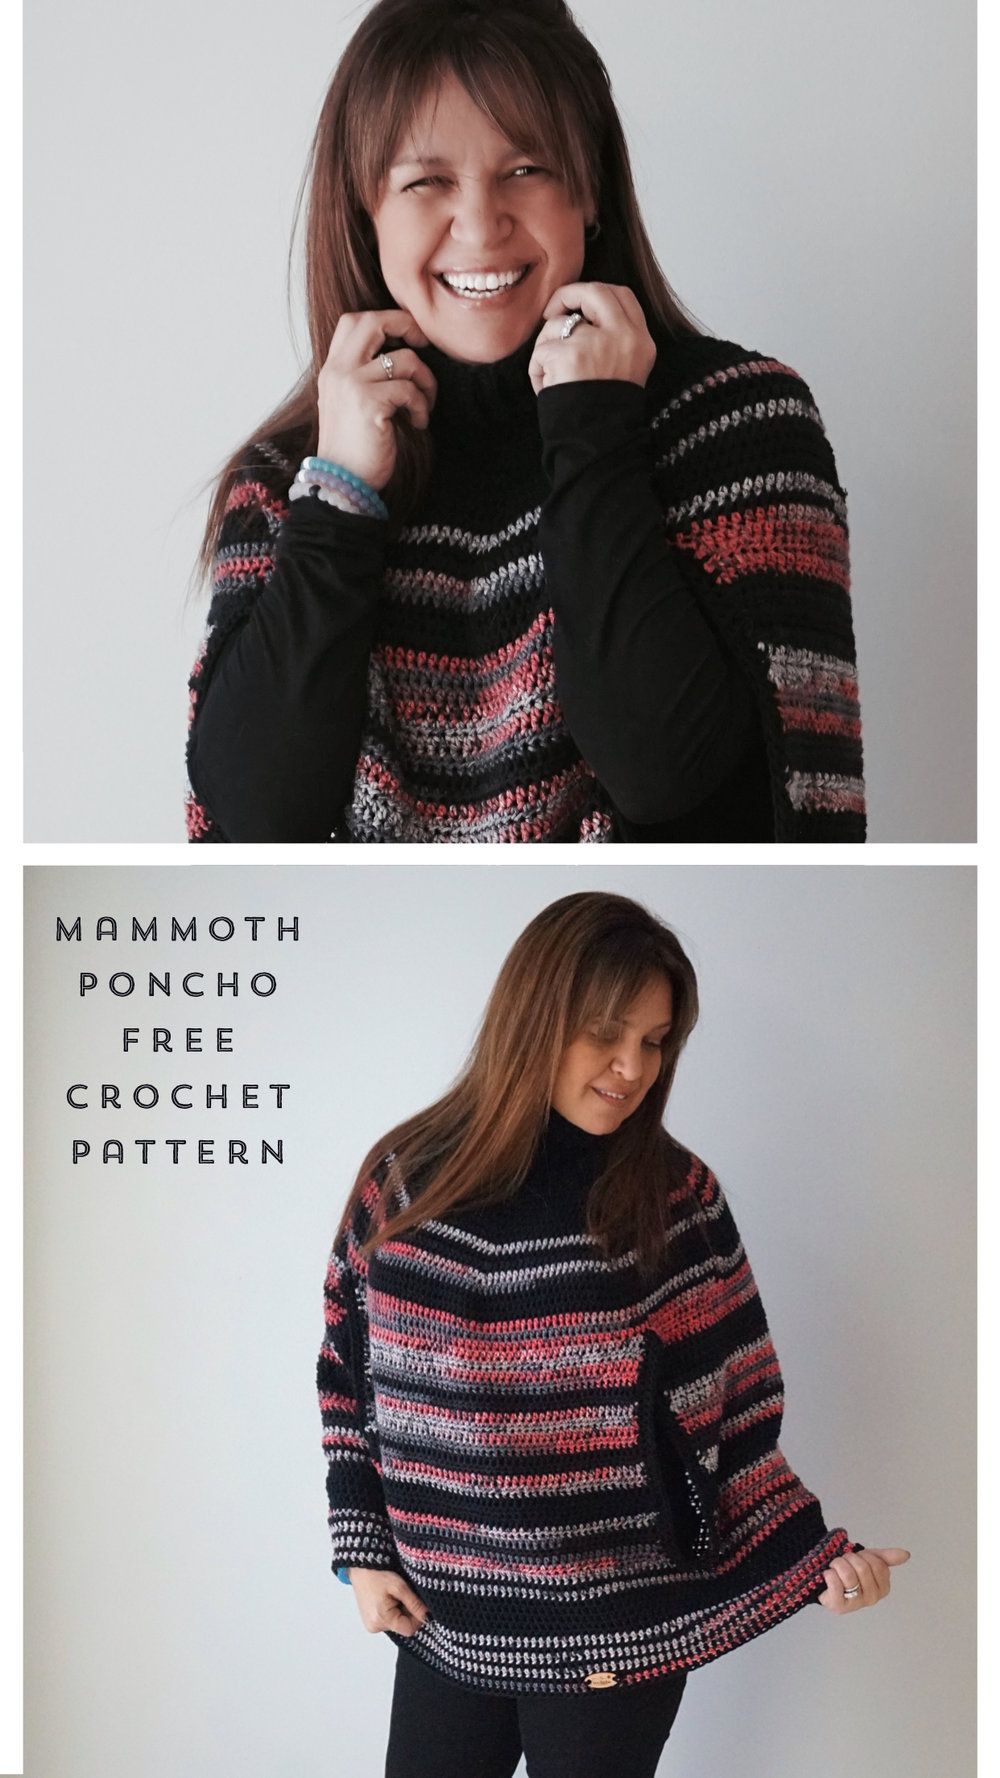 Mammoth_turtleneck_poncho_free_crochet_pattern_1x.jpg